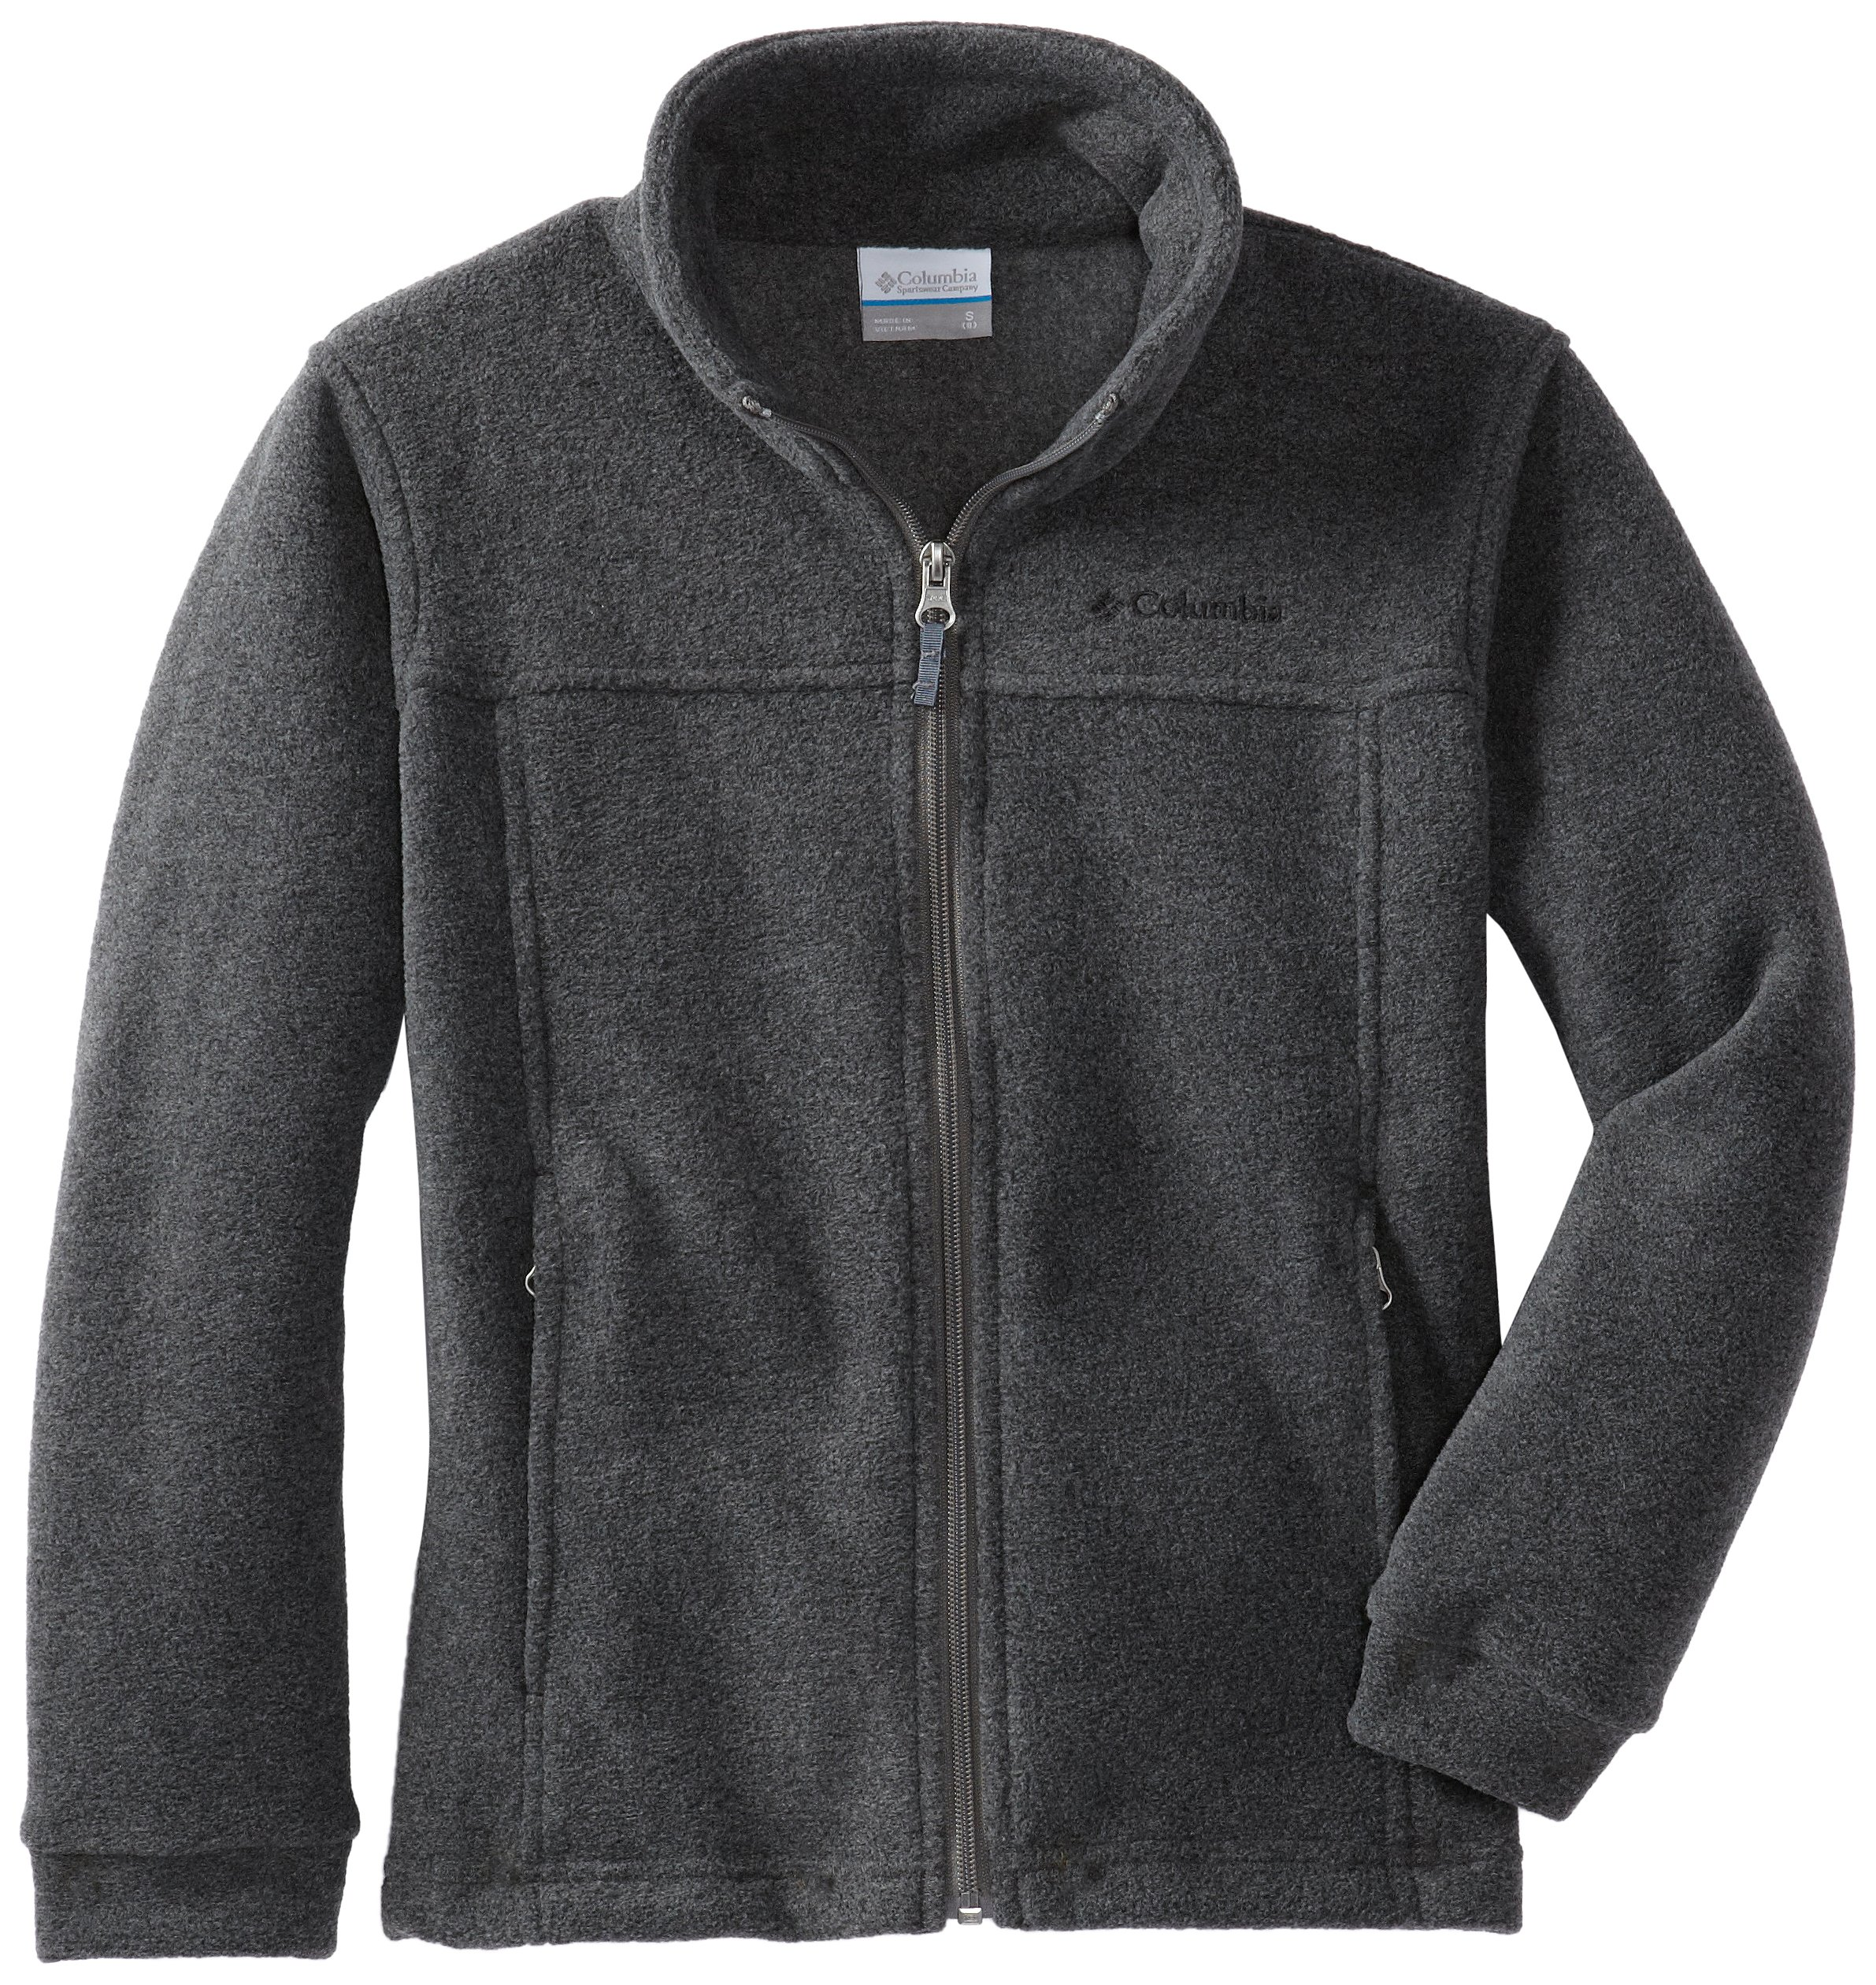 13a42365c Columbia Youth Boys' Steens Mt II Fleece Jacket, Soft Fleece with Classic  Fit